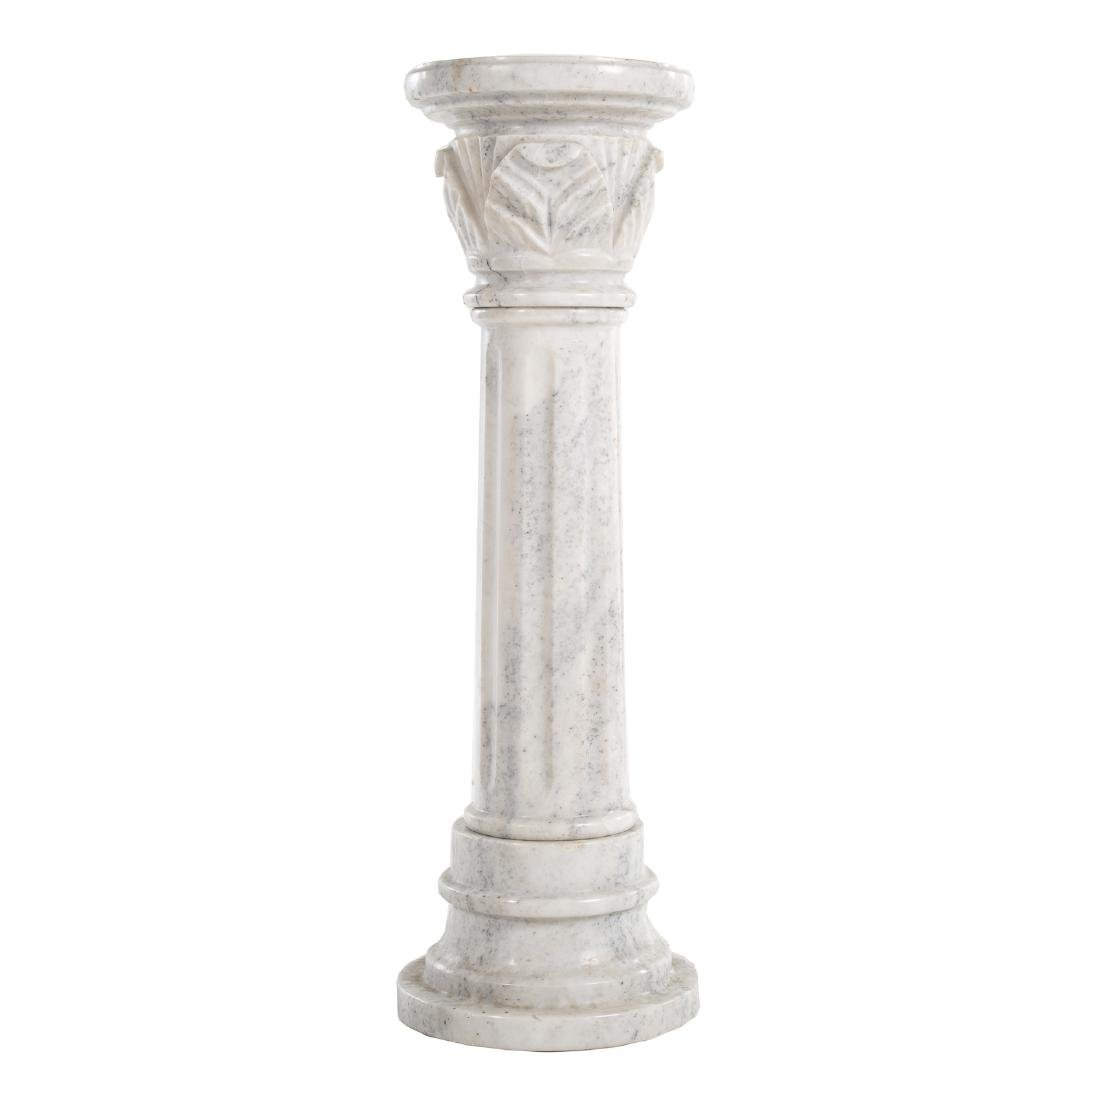 Contemporary carved white marble columnar pedestal